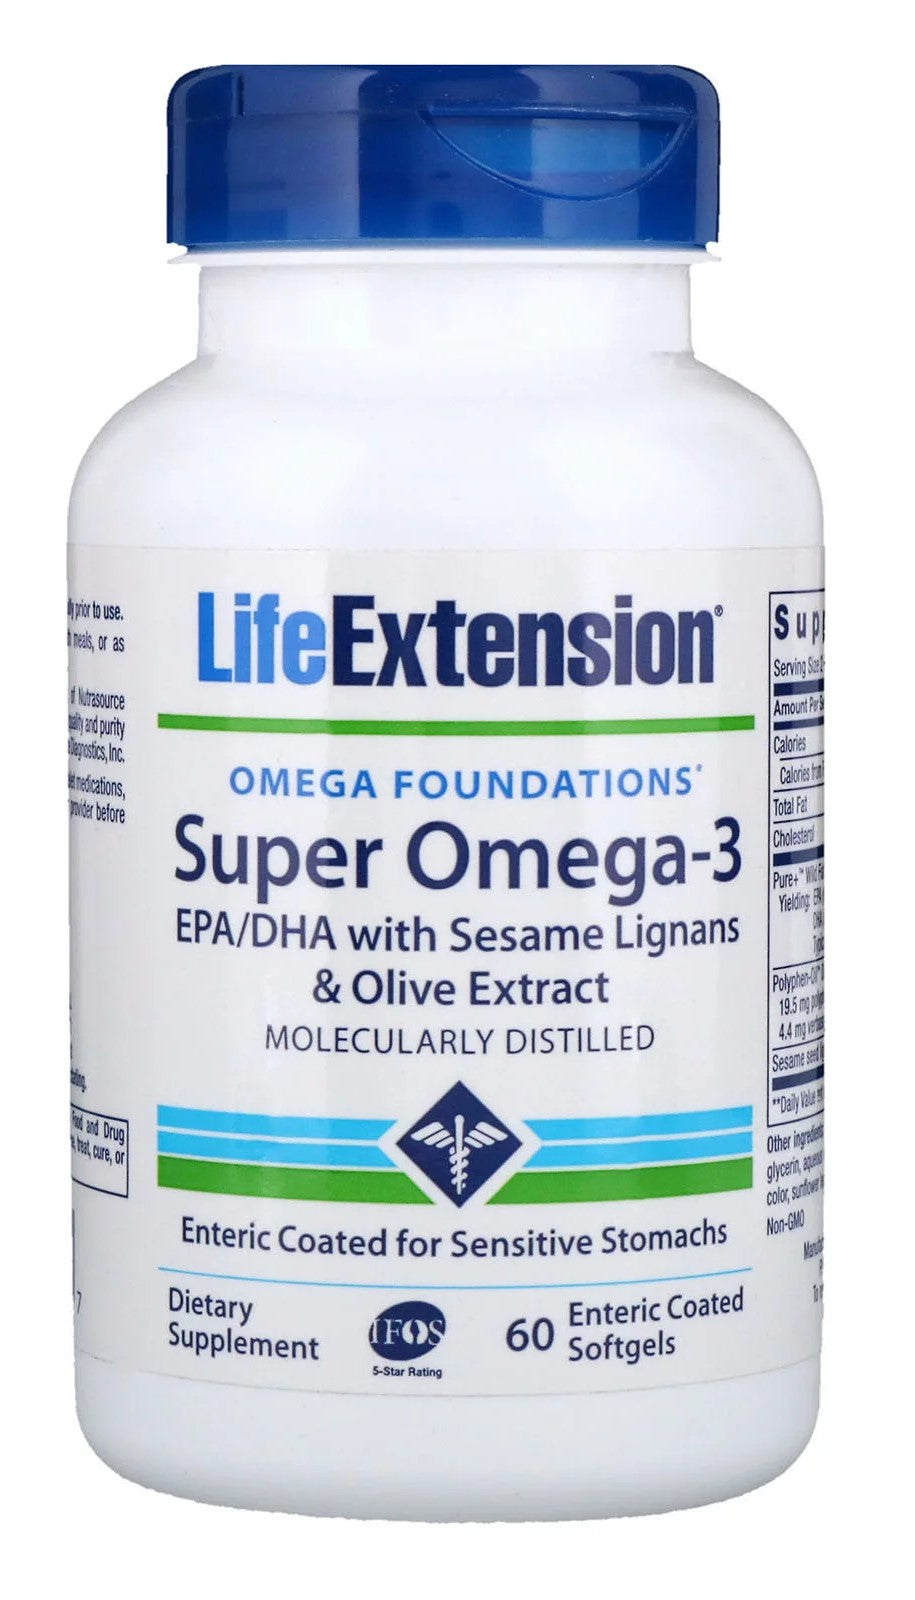 Super Omega-3 EPA/DHA with Sesame Lignans & Olive Extract - 60 enteric coated softgels